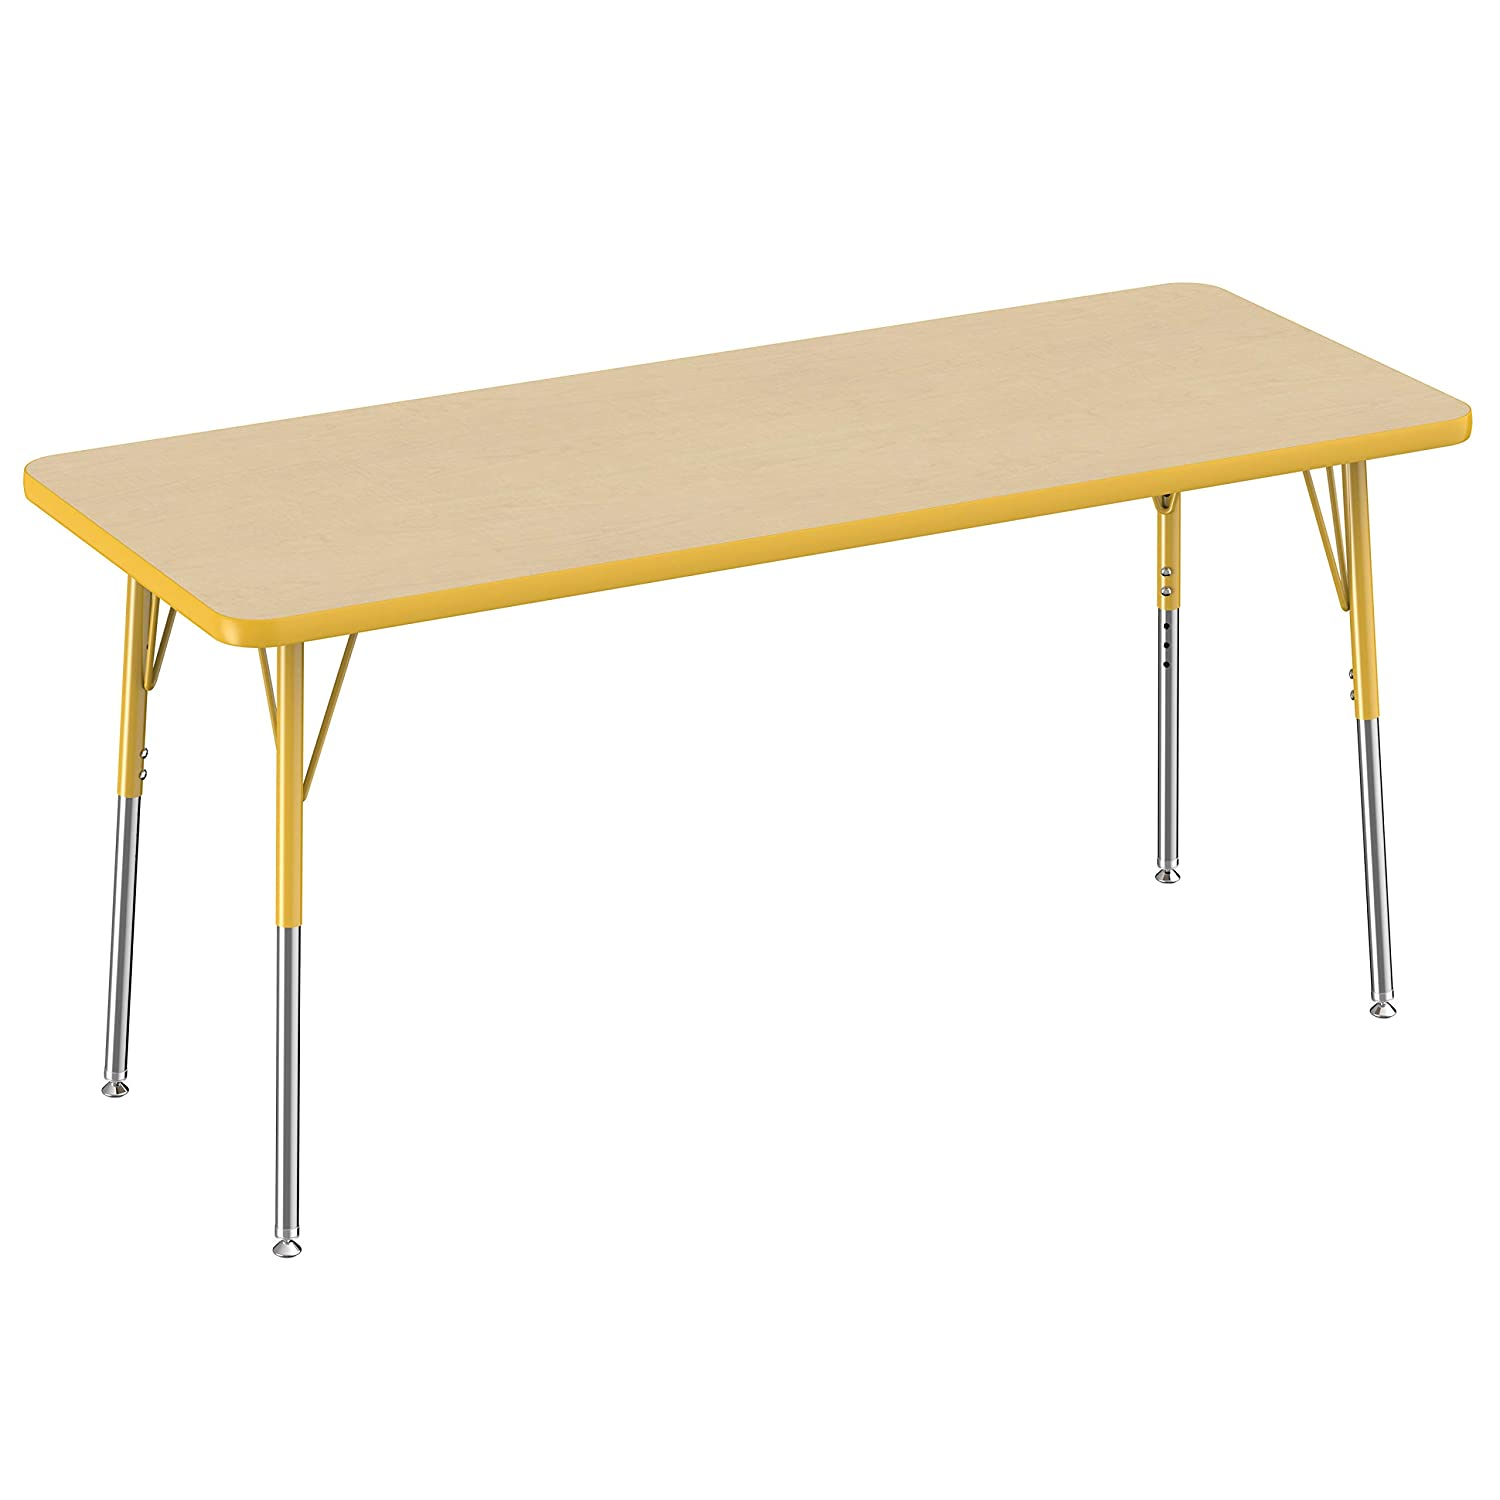 Maple Top And Yellow Edge Adjustable Height 19 30 Inches Standard Legs With Swivel Glides Fdp Rectangle Activity School And Office Table 24 X 60 Inch Classroom Furniture Surclima Office Products